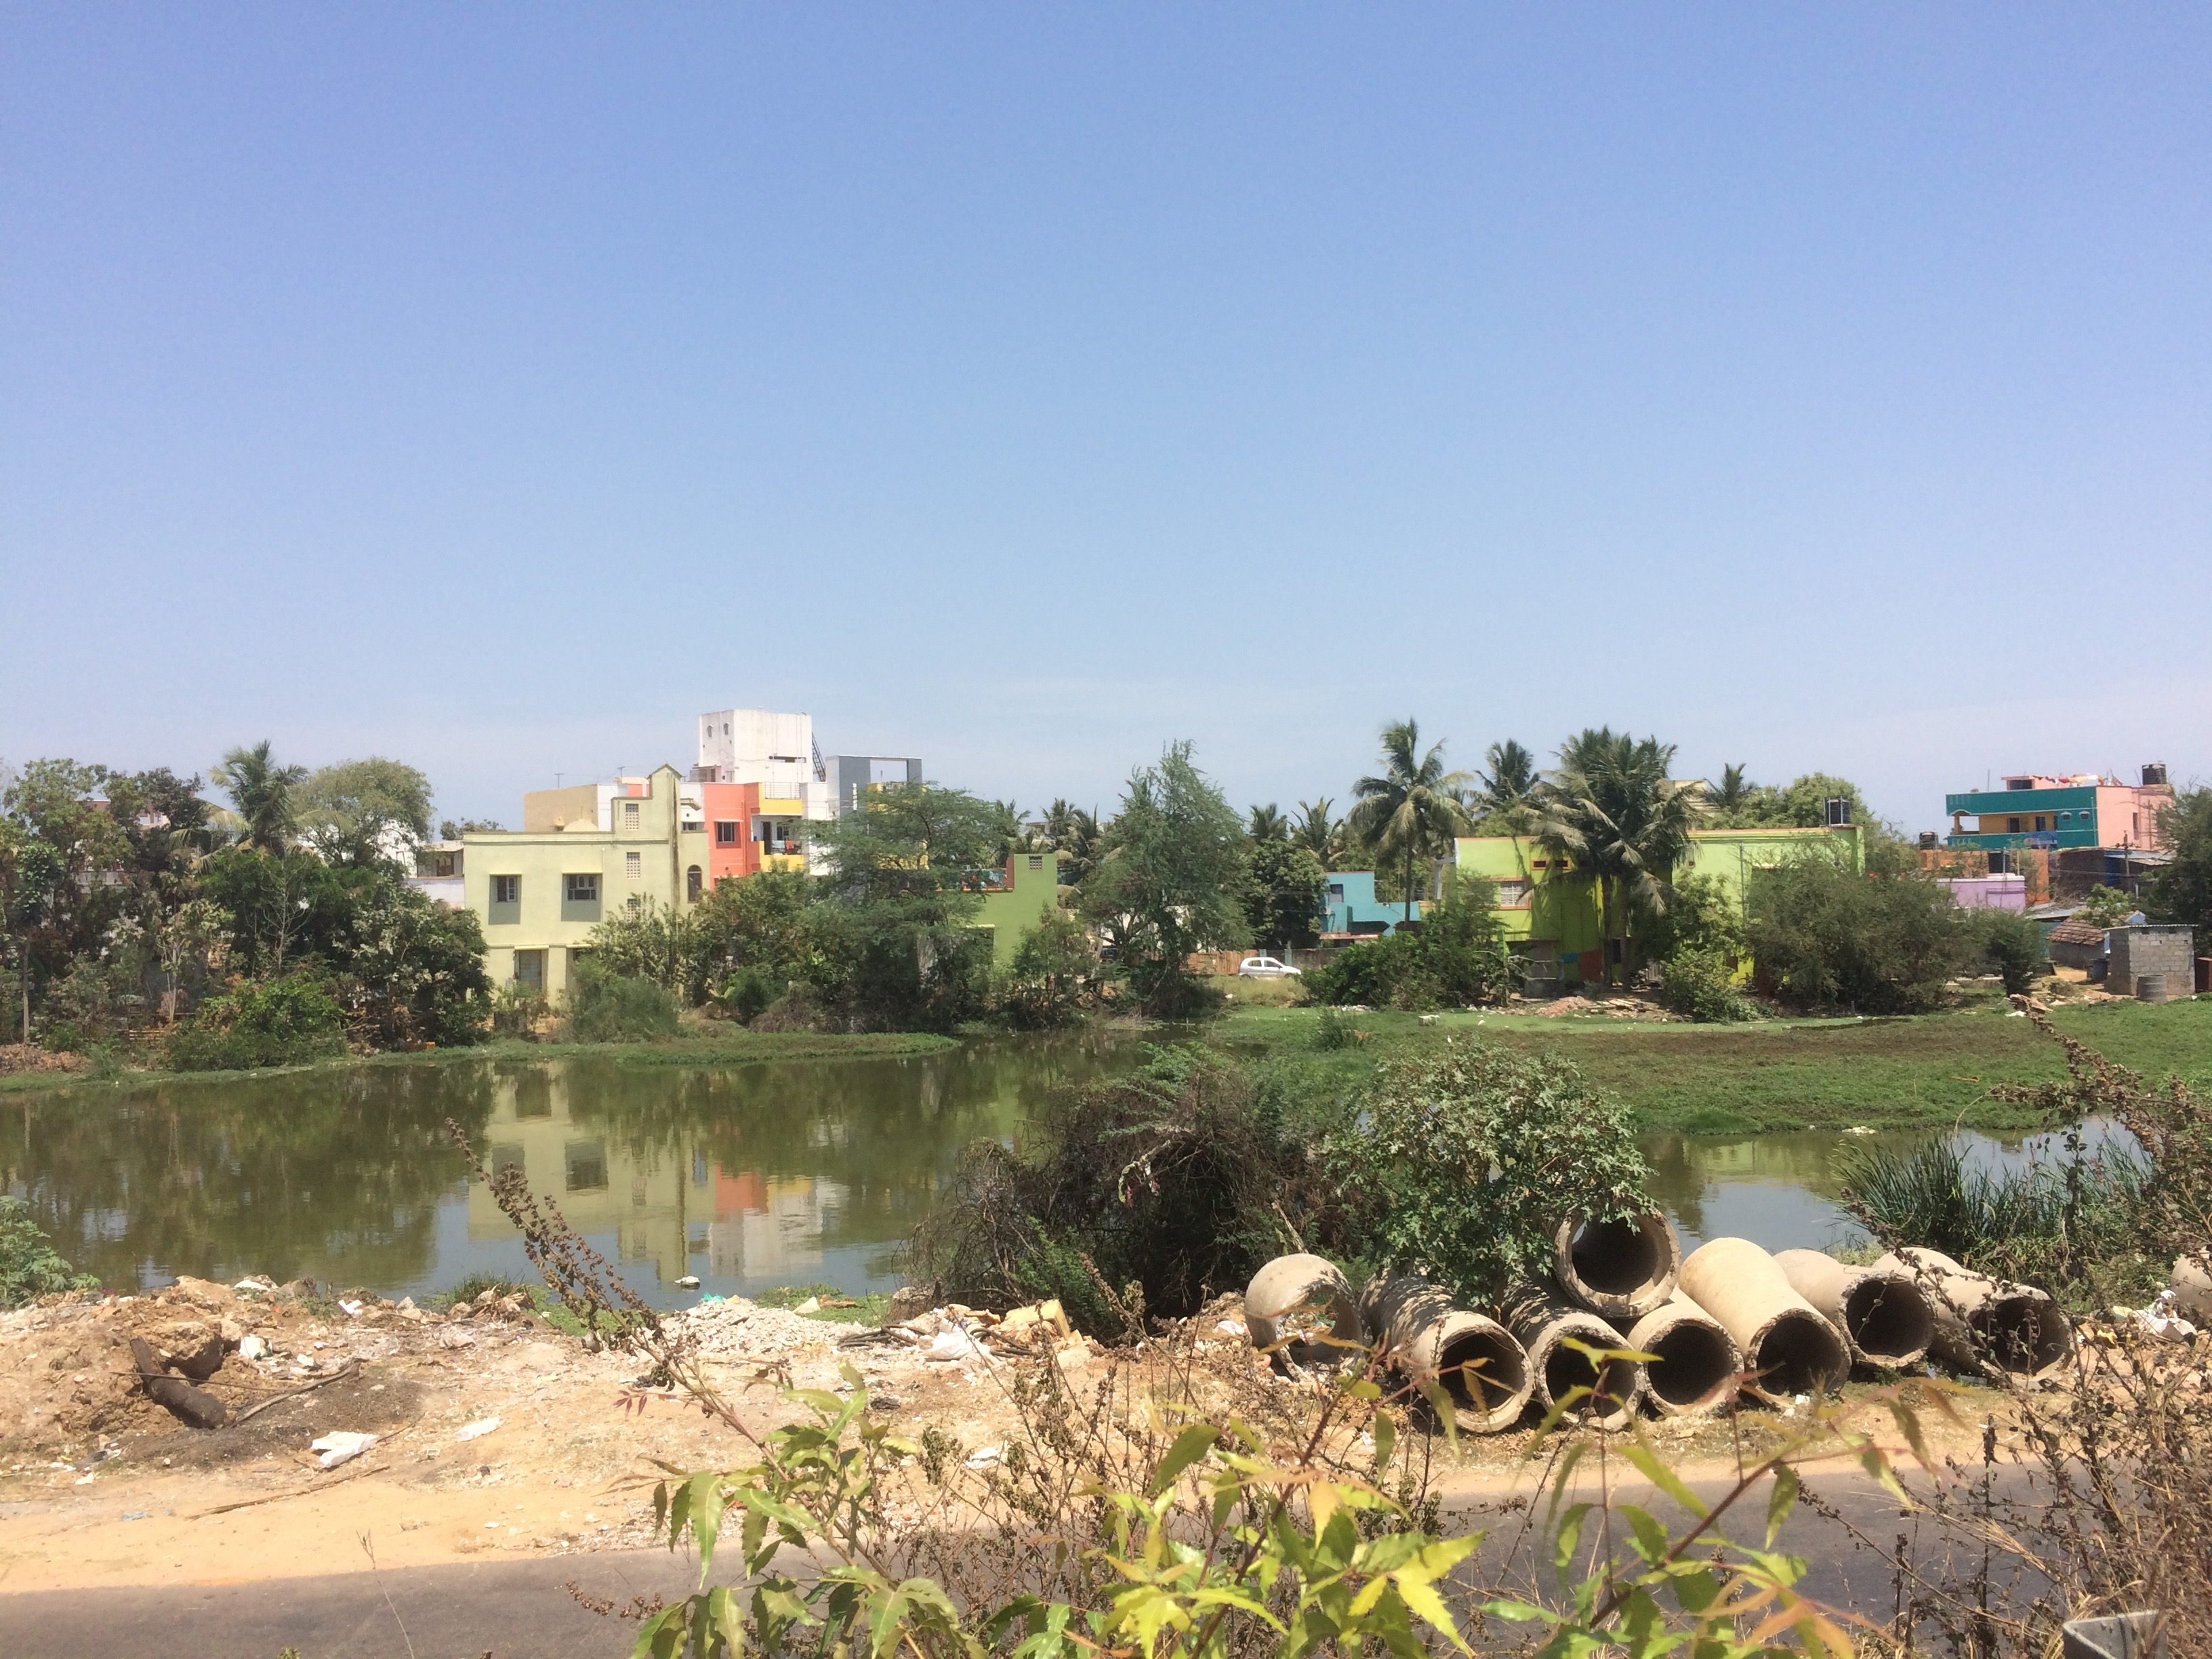 Temple pond in Pattaraivakkam, Korattur